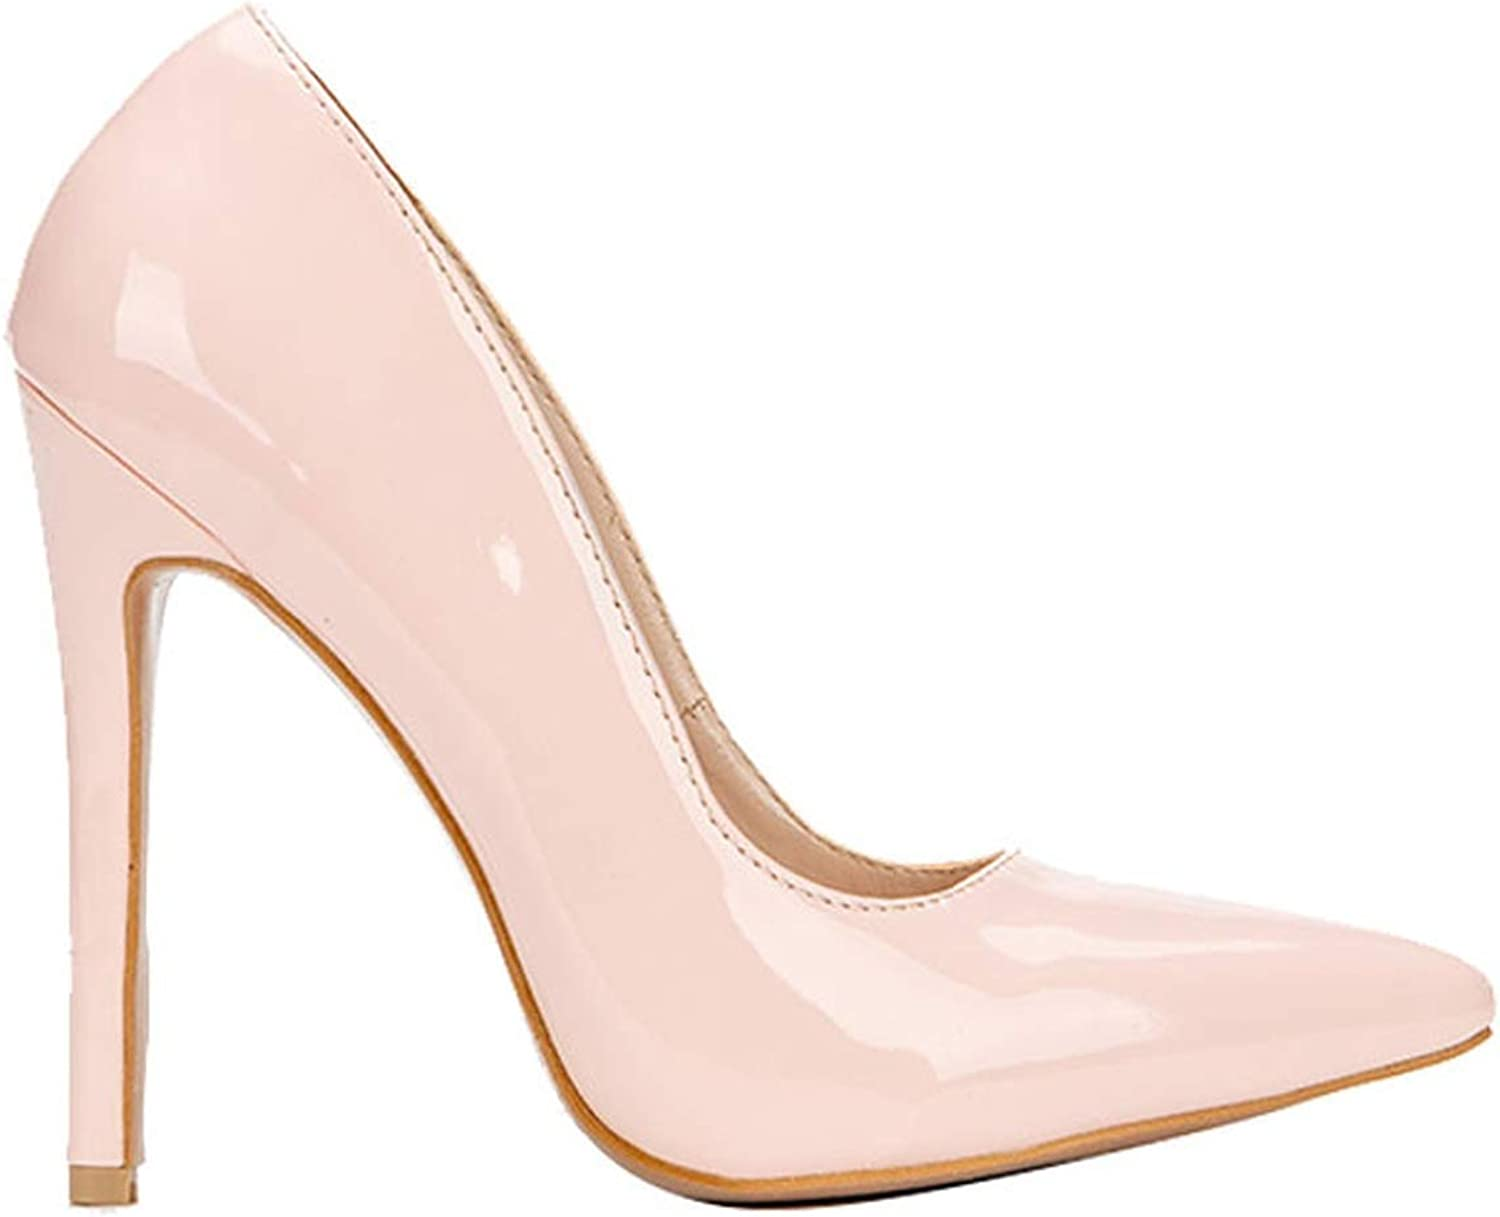 Woman Pumps High Heels Shallow Office Lady Fashion Concise Thin Heels Sexy Women shoes Pink,6.5